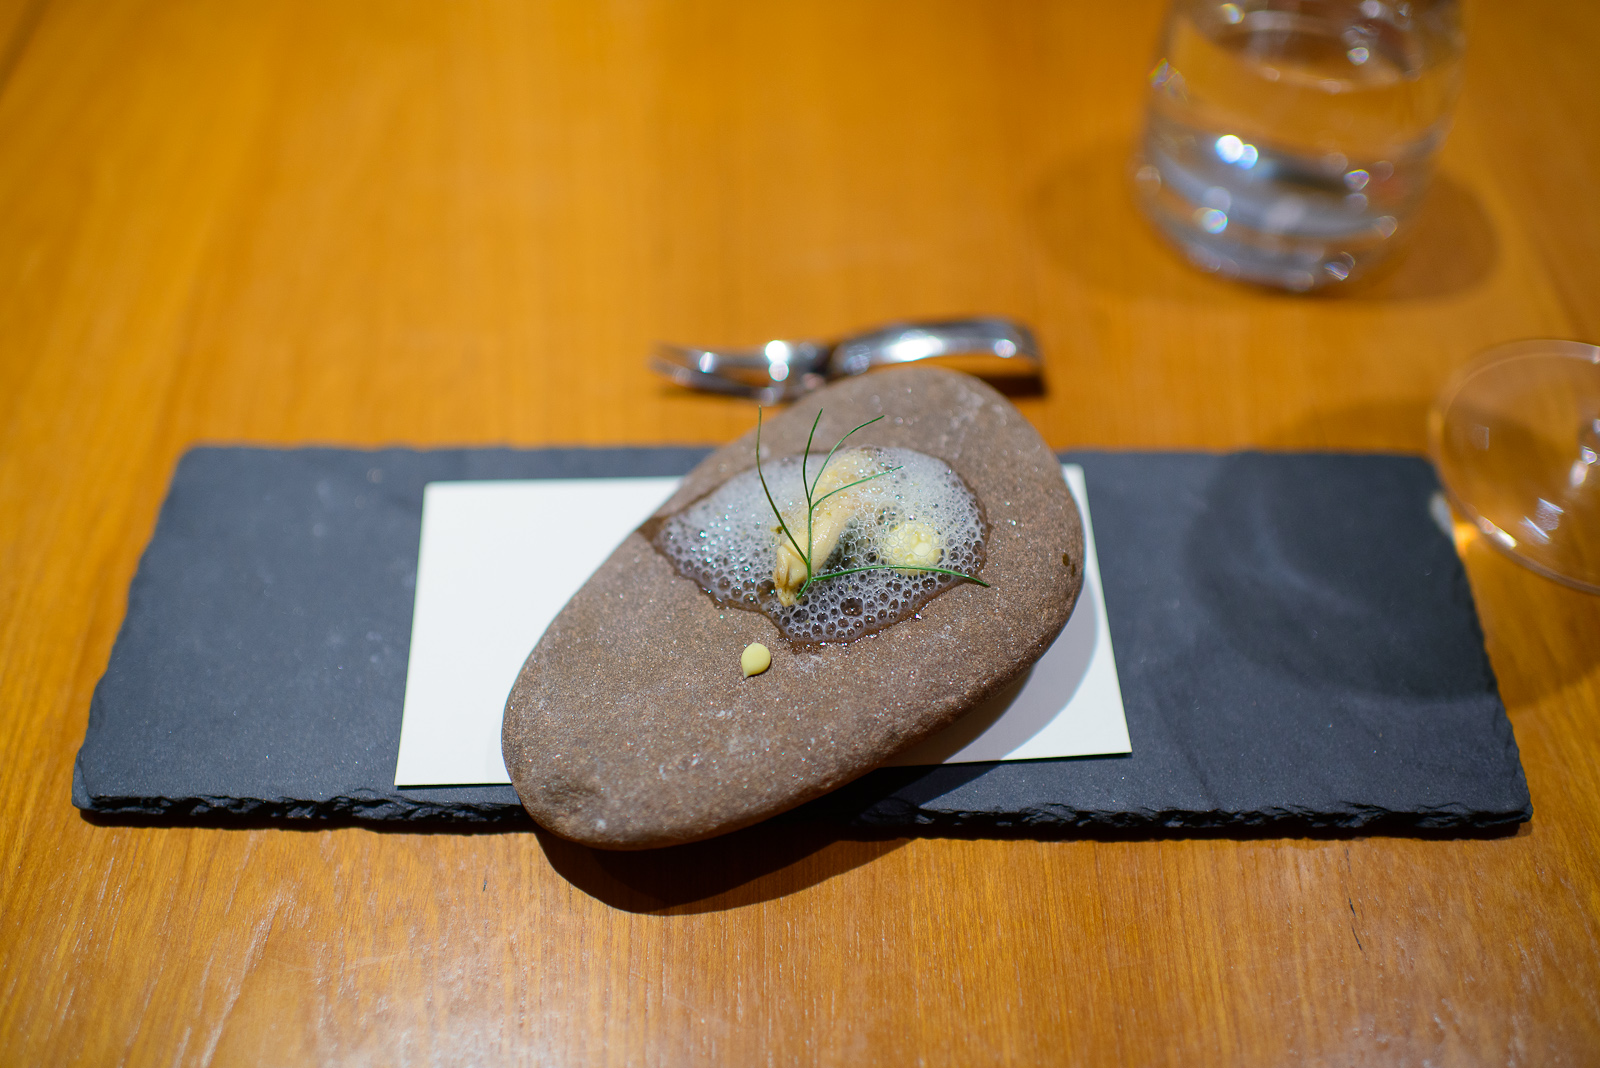 Amuse bouche 2: Prince Edward Island mussels cooked escabeche, s